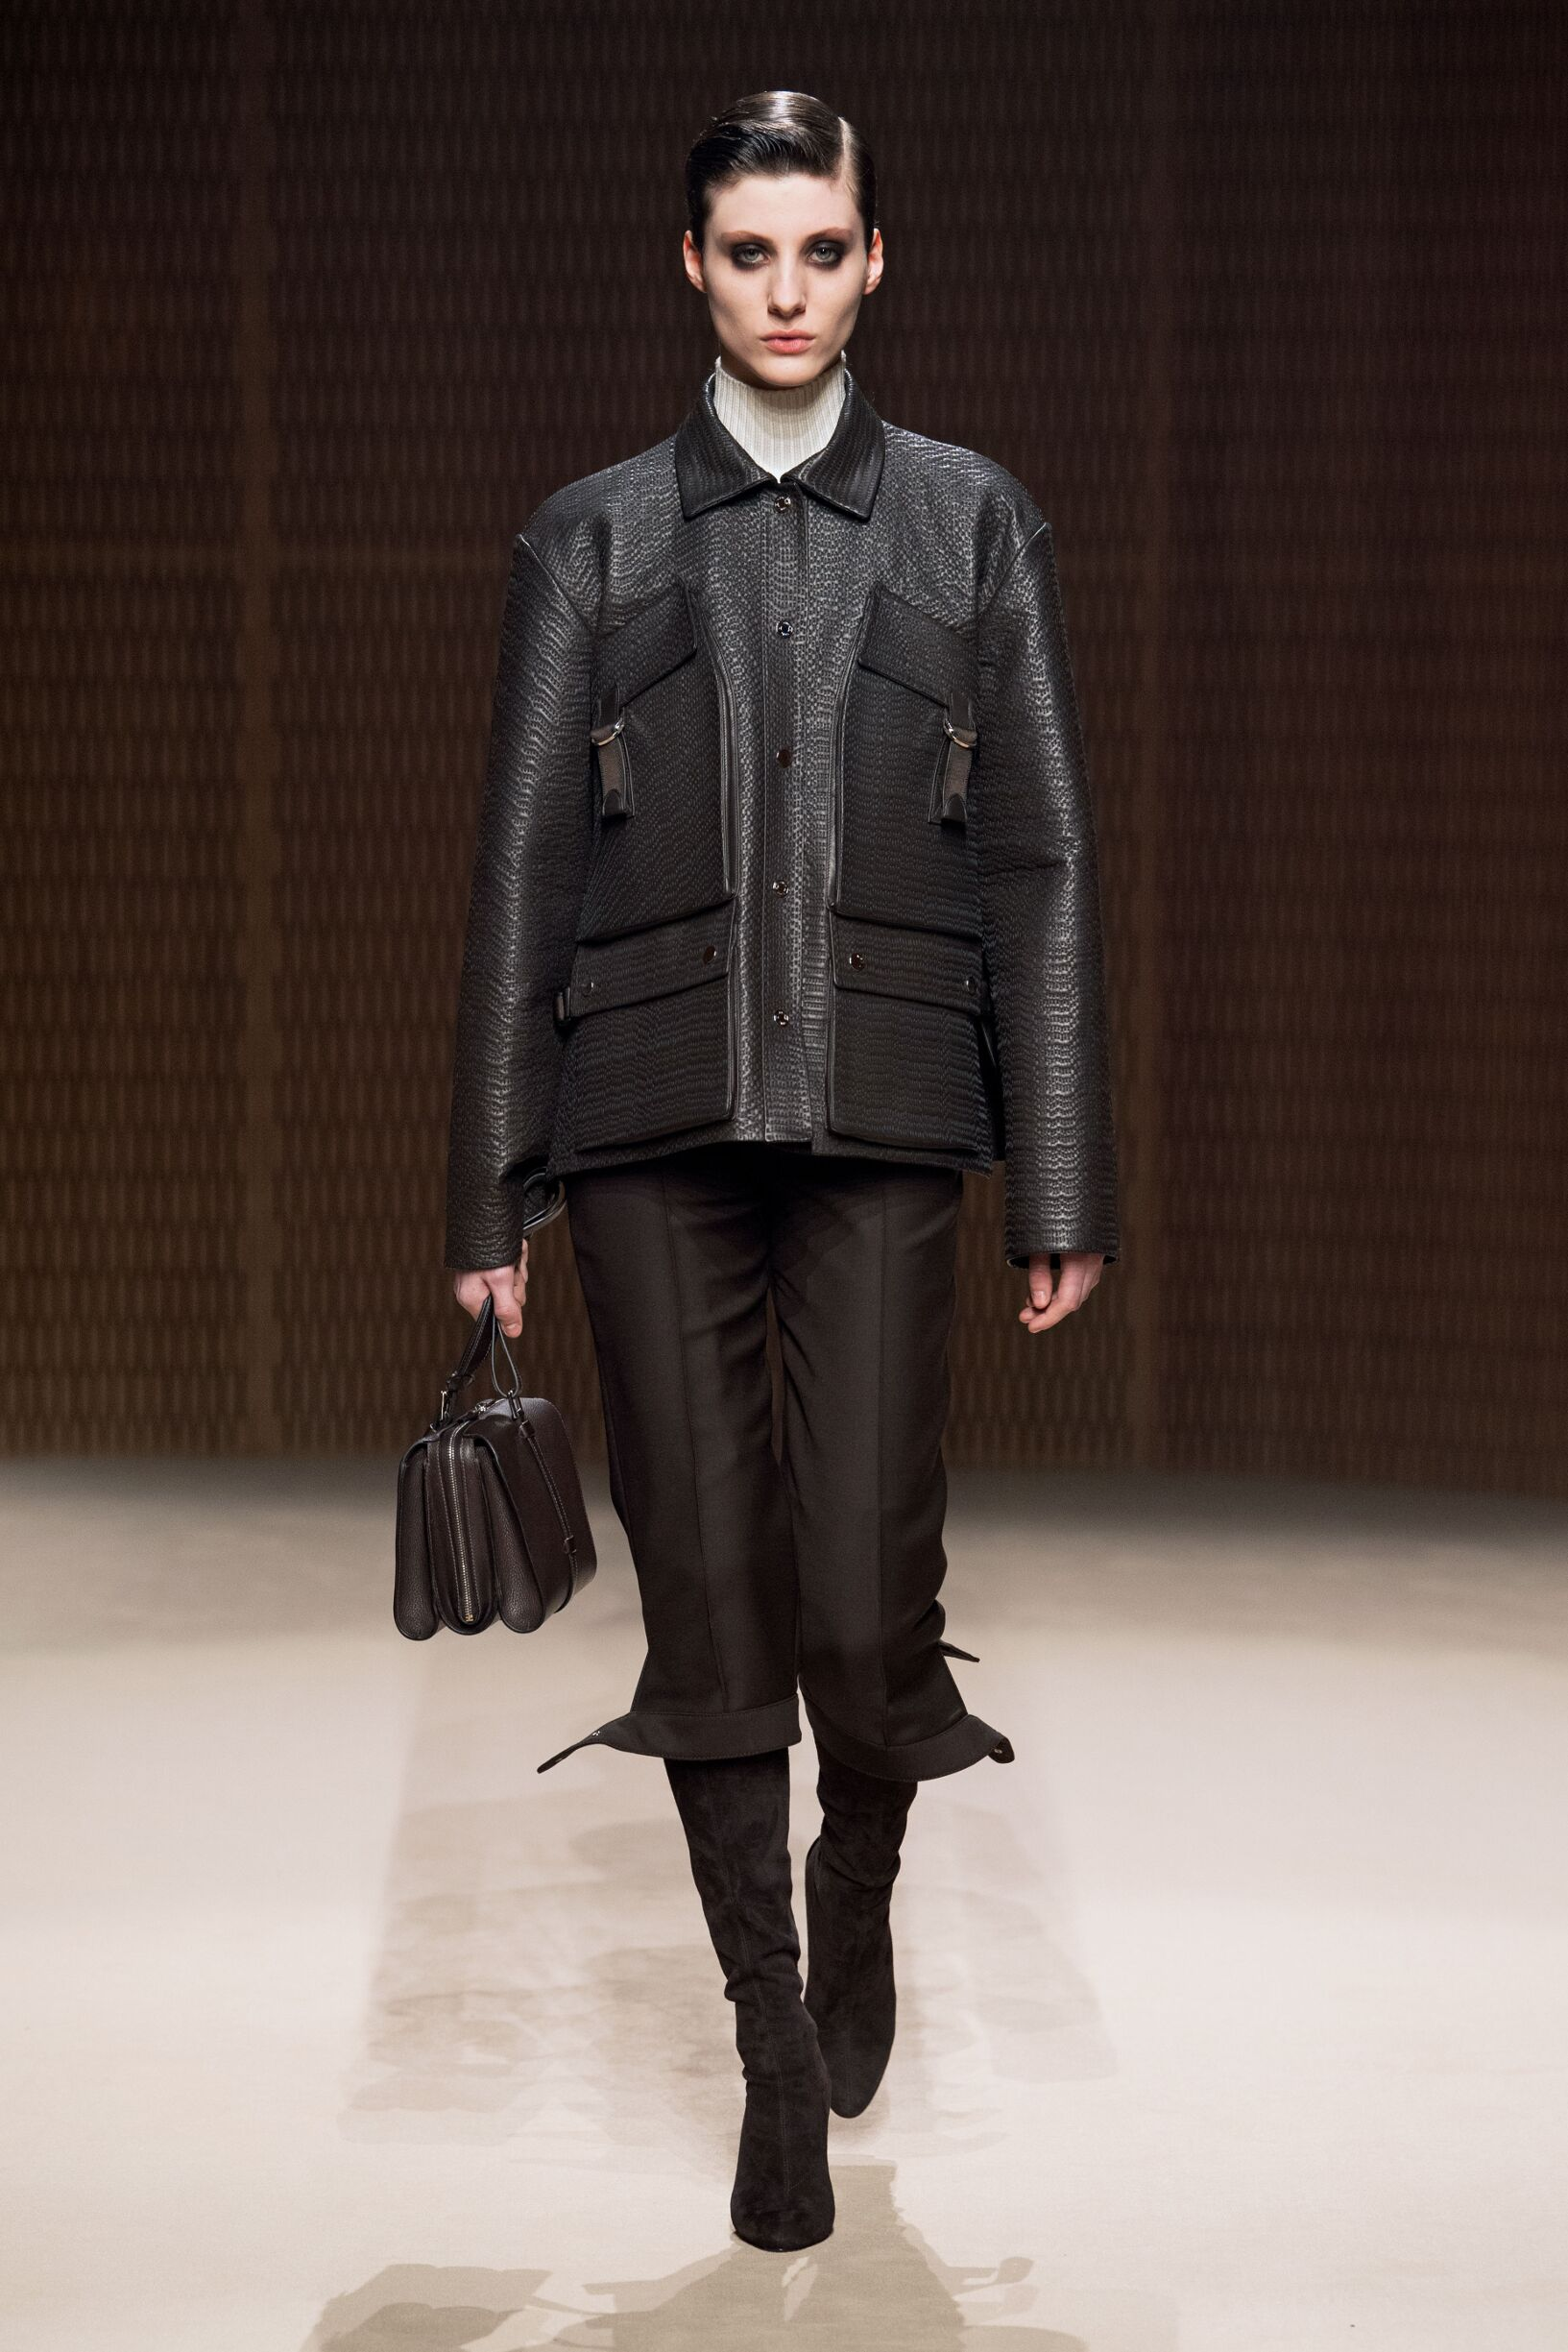 2019 Hermès Winter Catwalk